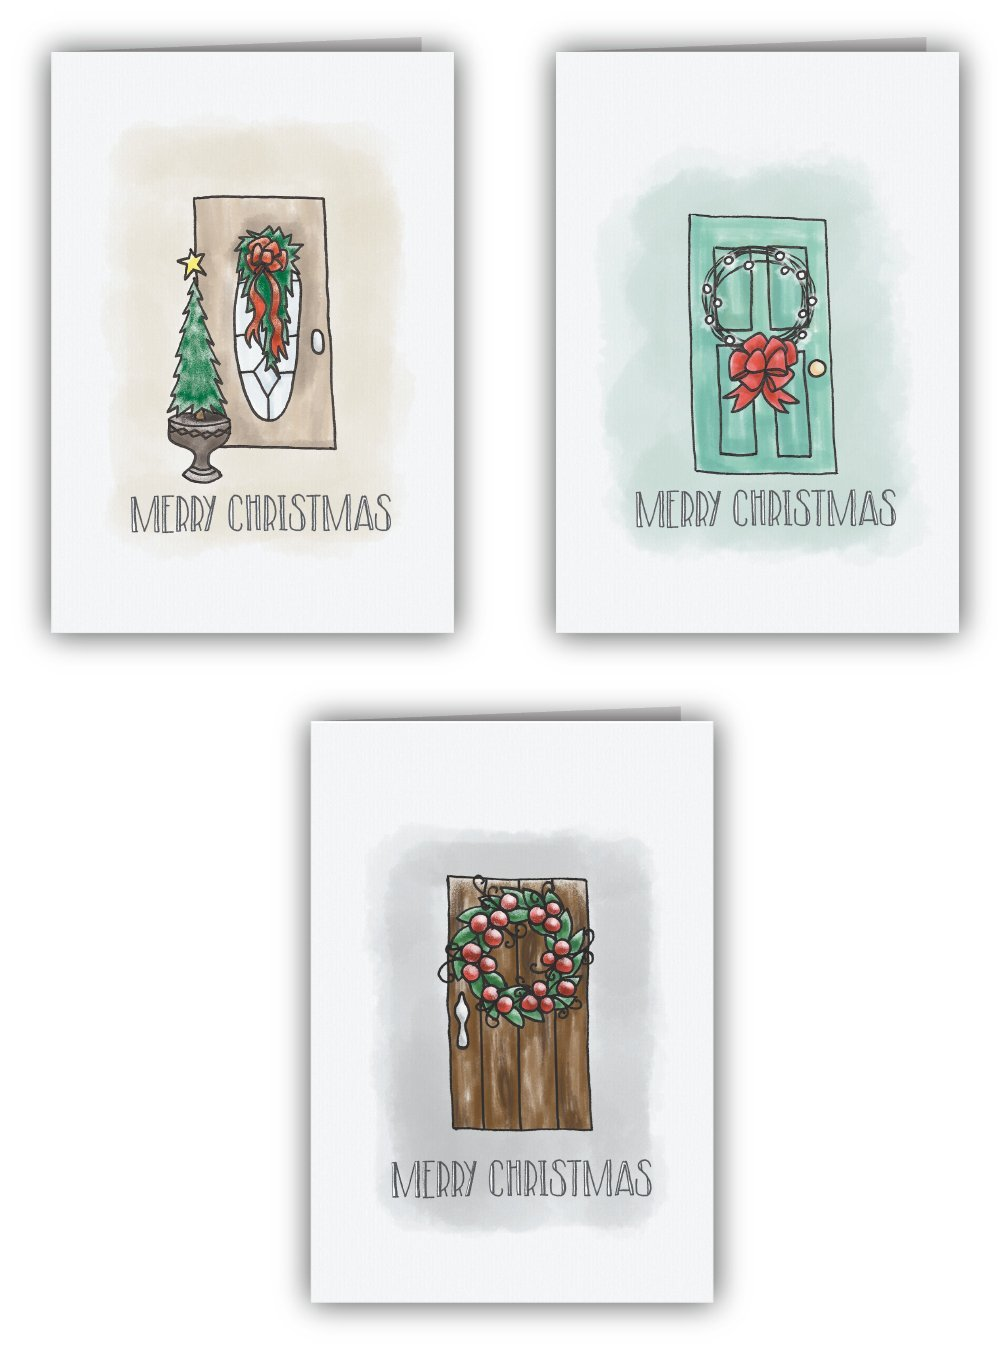 Christmas Door Merry Christmas Card Collection - 24 Cards & Envelopes